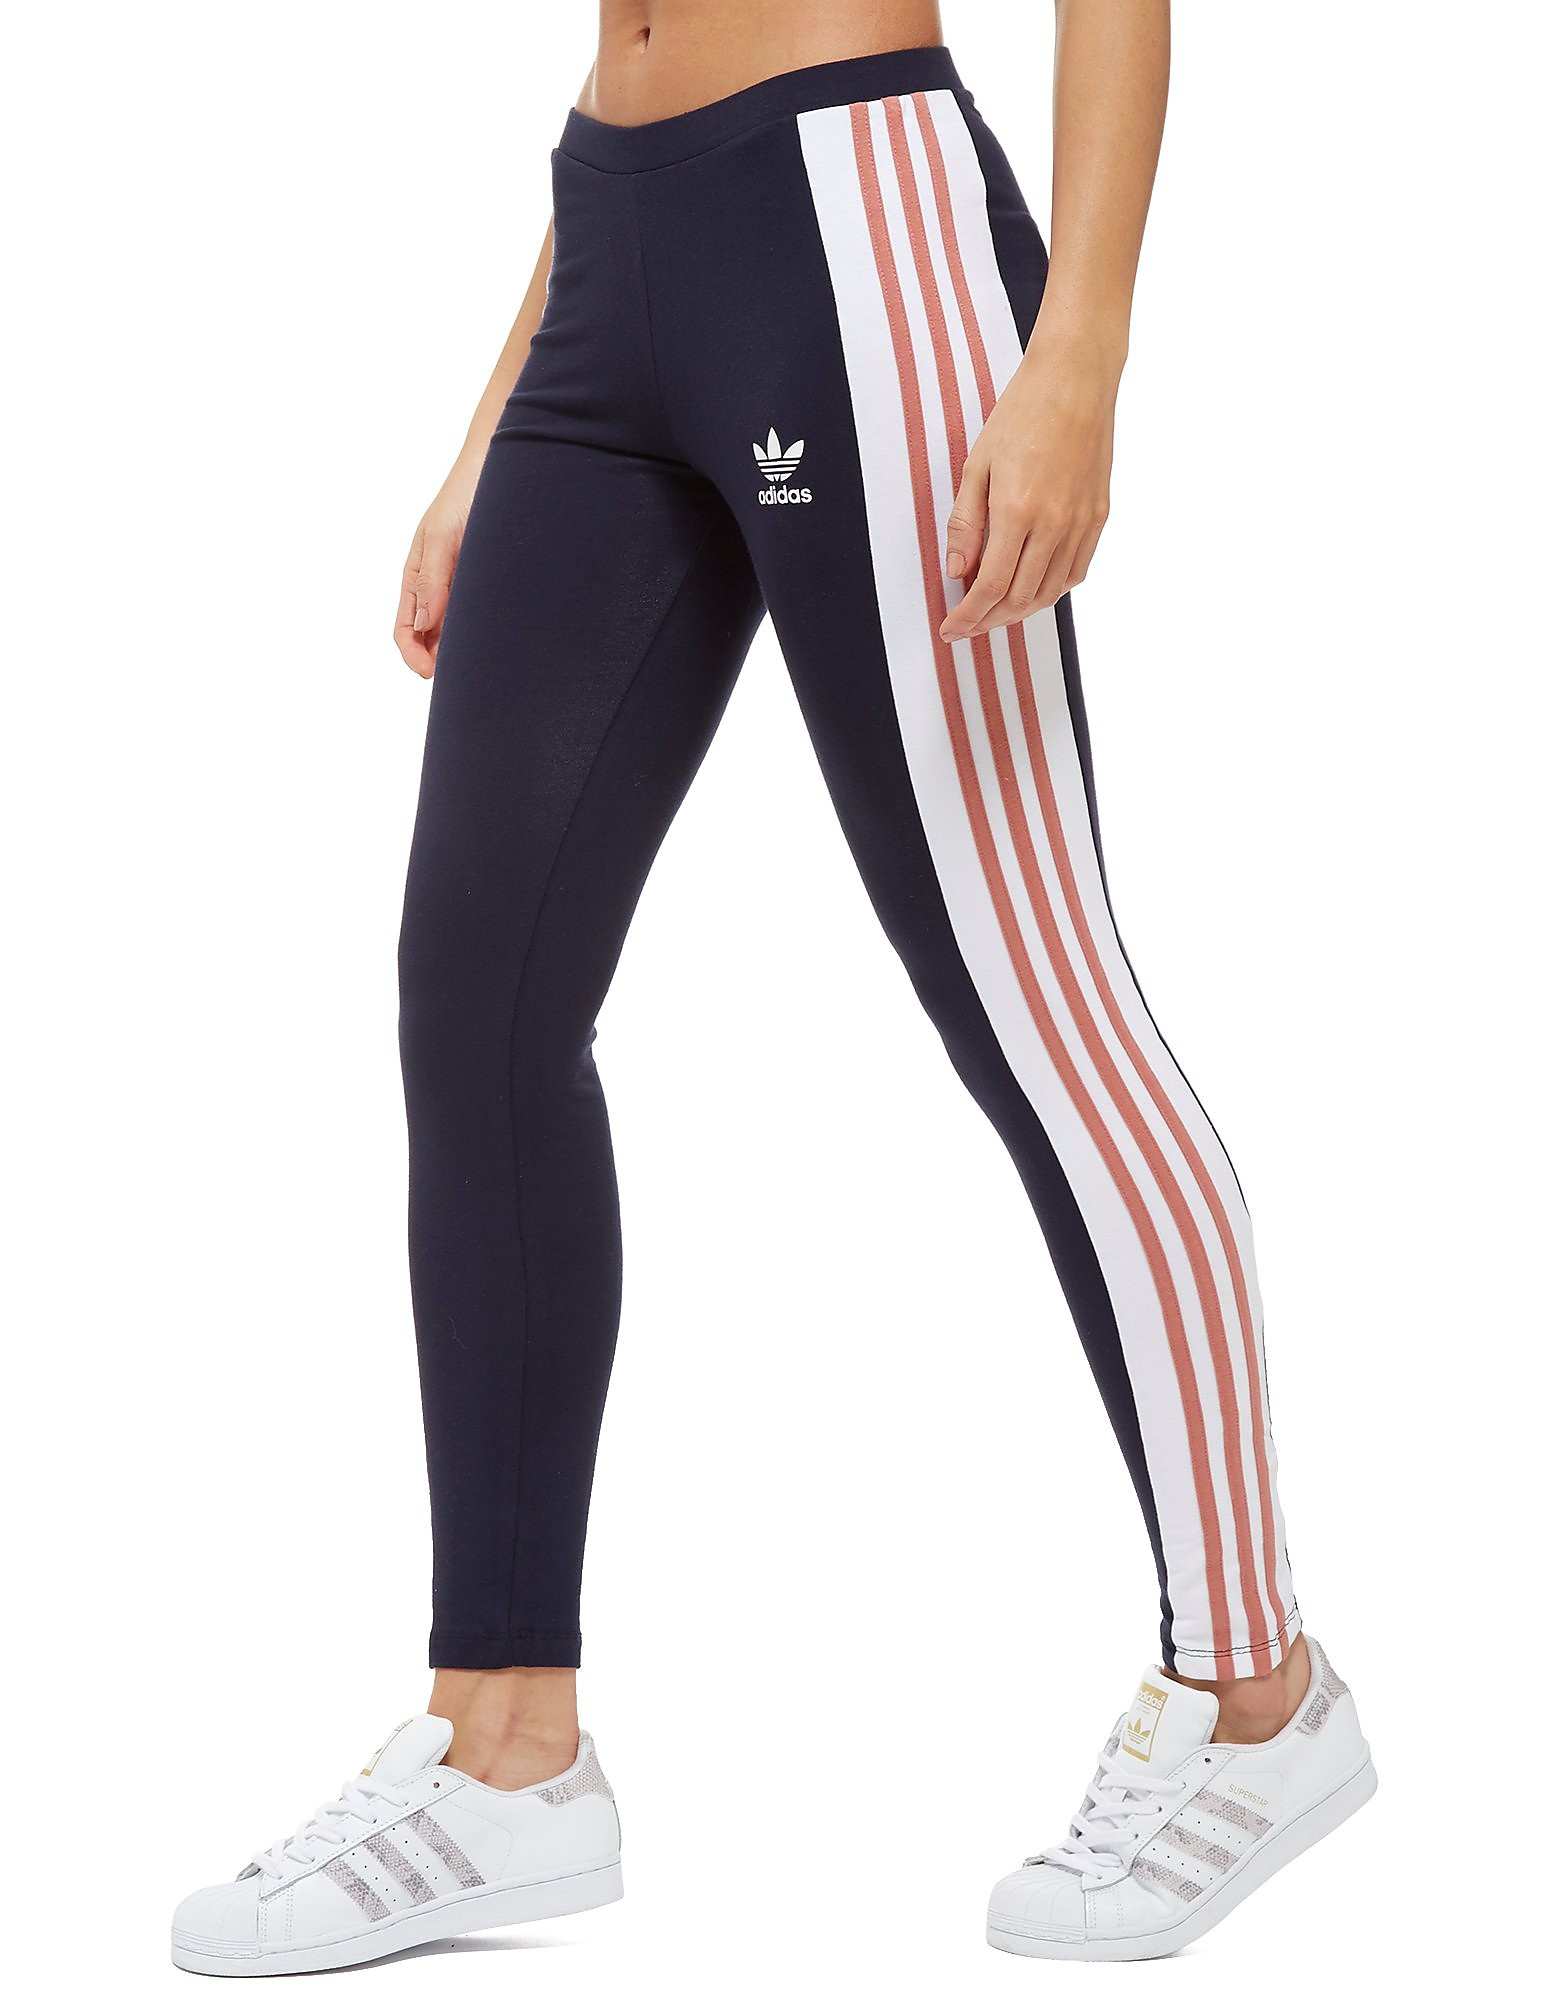 adidas Originals 3-Stripes Panel Leggings Marineblau-Pink - Navy/Pink - Womens, Navy/Pink